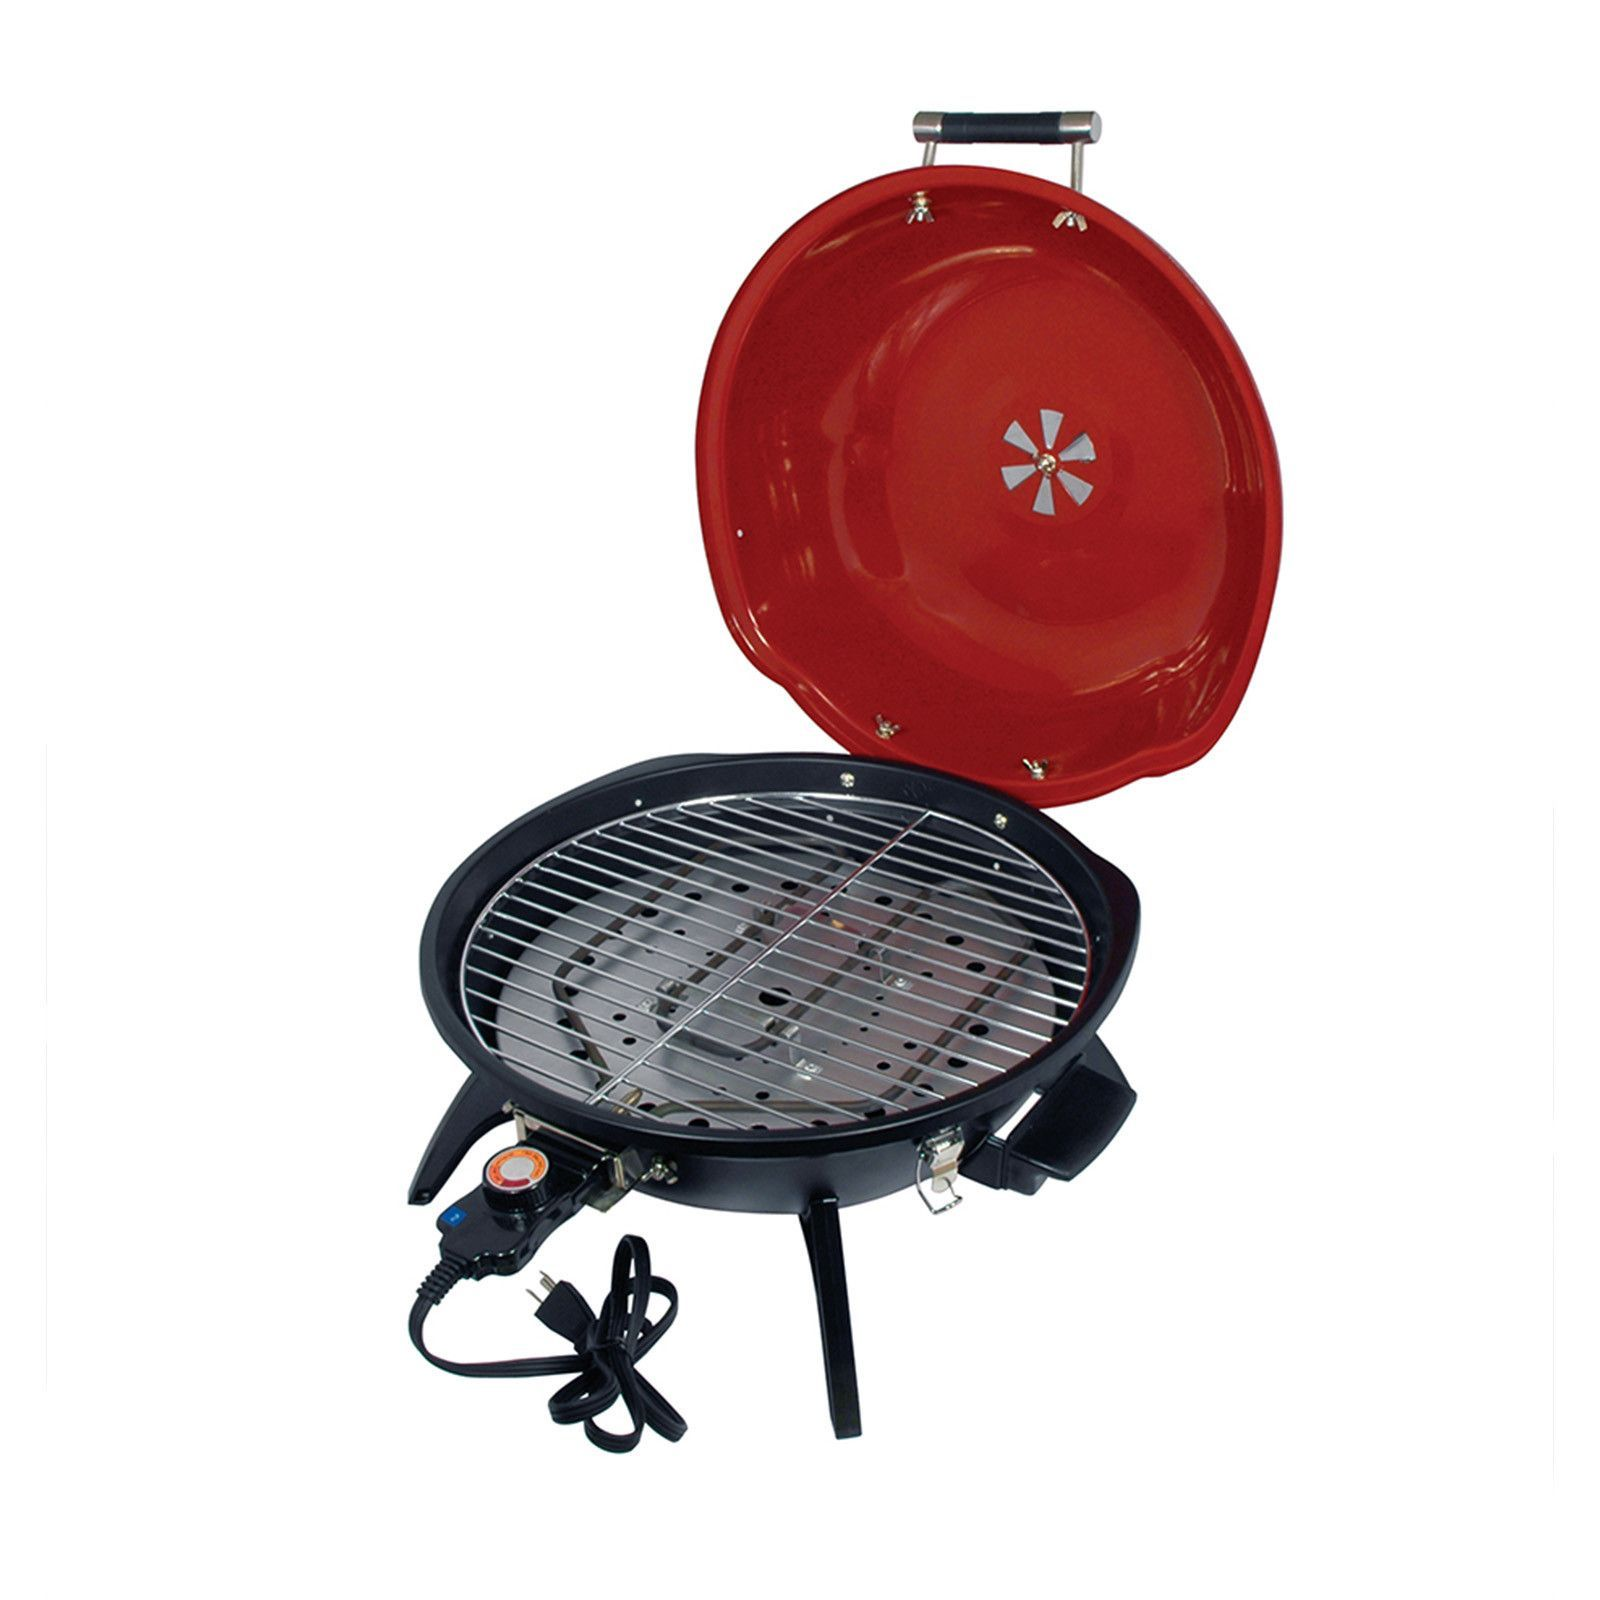 Better Chef 15 inch Electric Tabletop Barbecue Grill